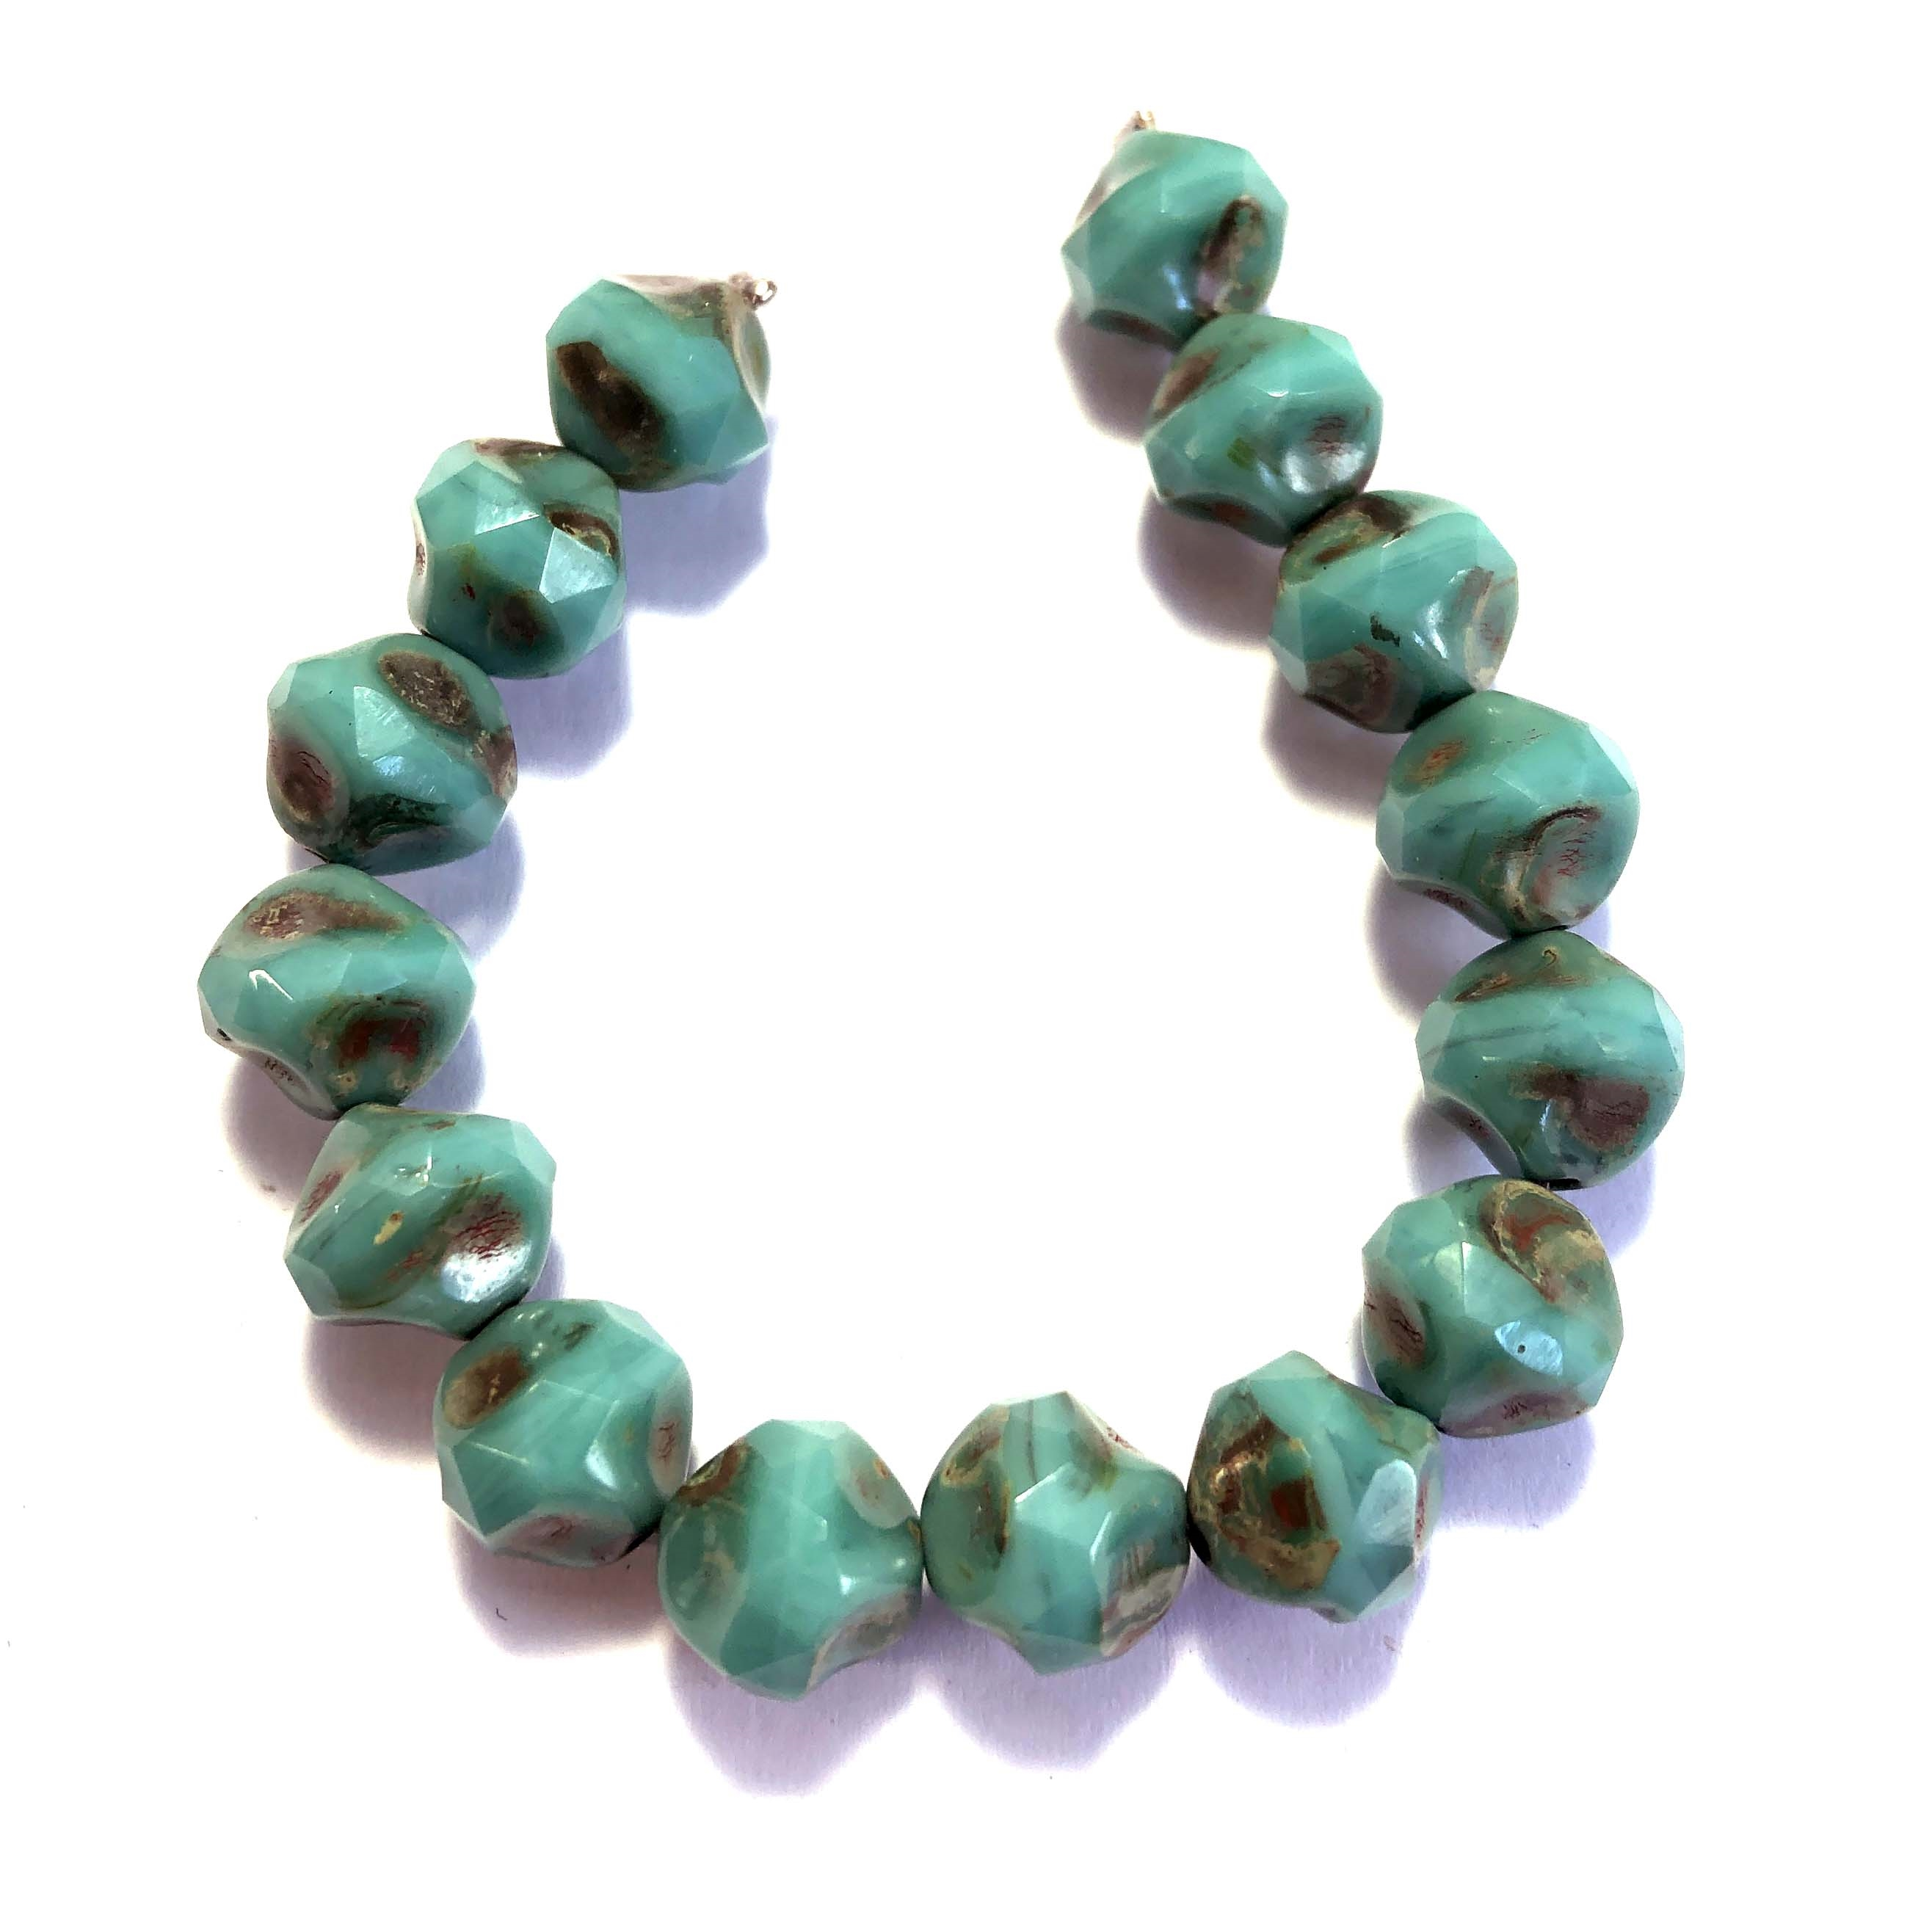 baroque turquoise Picasso finish beads, Czech glass beads, baroque beads, Czech glass, Czech, glass, Picasso, drilled, glass beads, aqua beads, US made, B'sue Boutiques, jewelry making, blue green, 9mm, 0145. beading, beading supplies